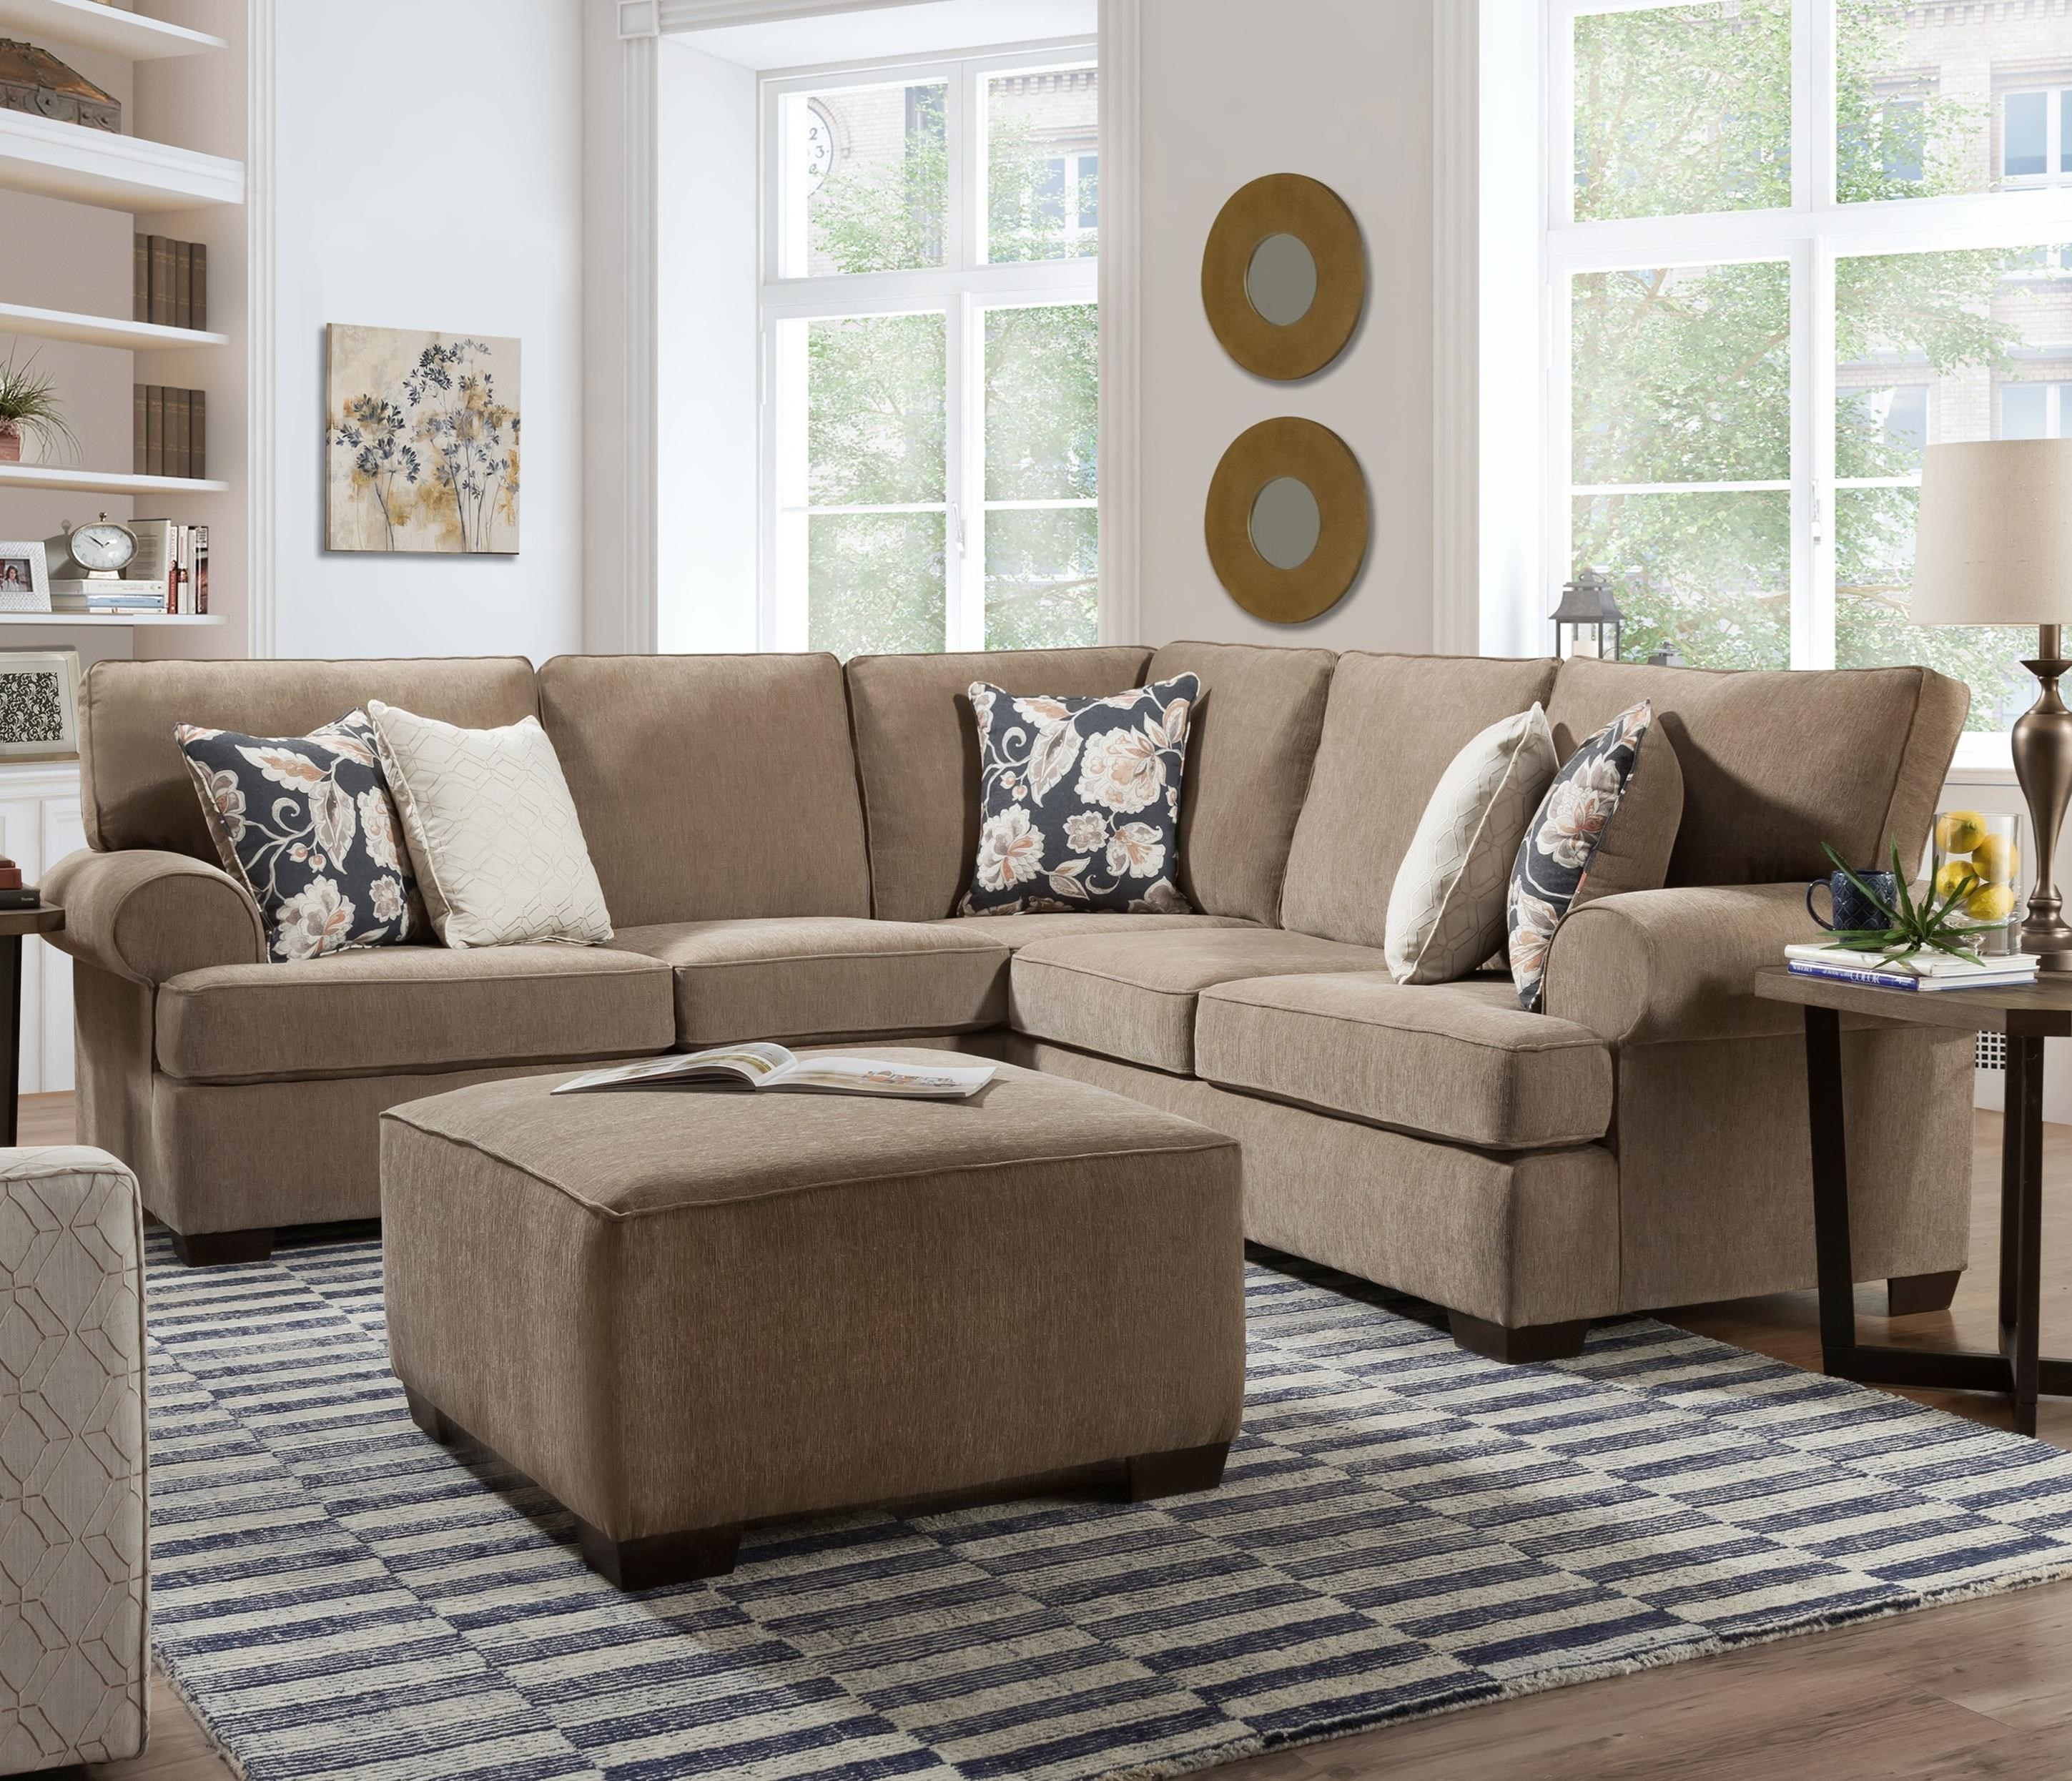 3010 Sectional by Peak Living at Steger's Furniture